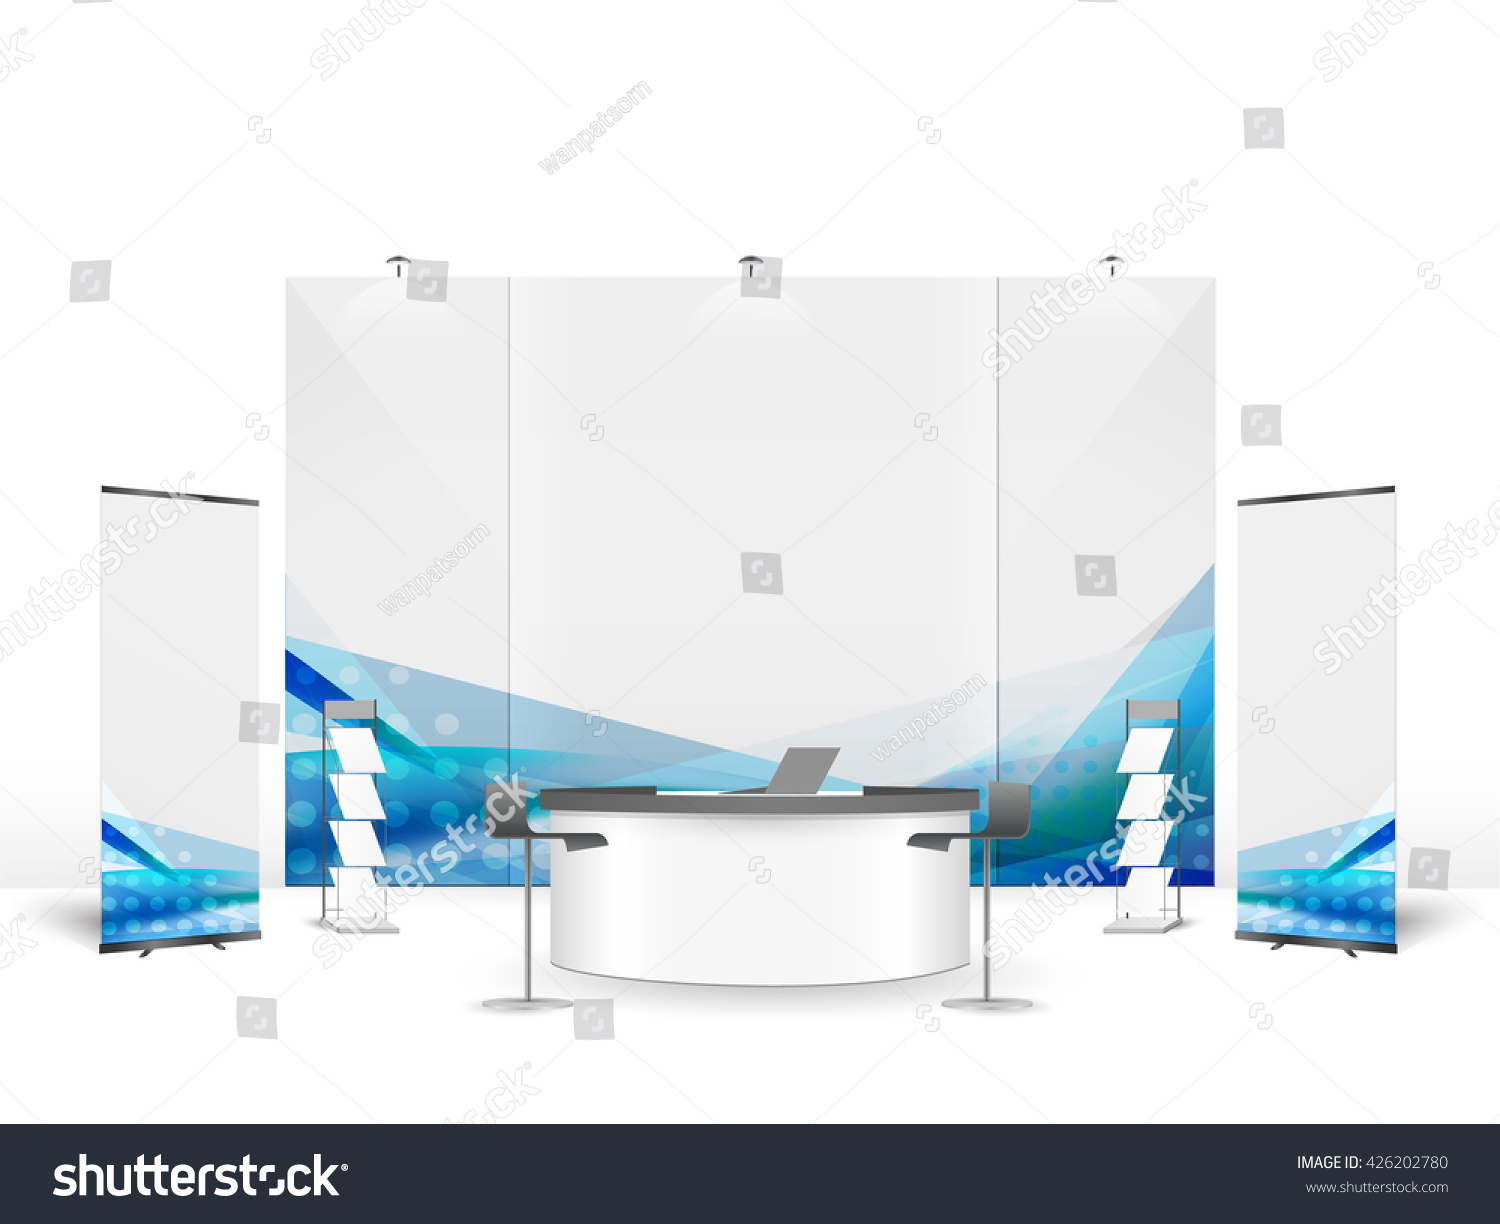 Exhibition Stand Design Vector : White creative exhibition stand design booth stock vector